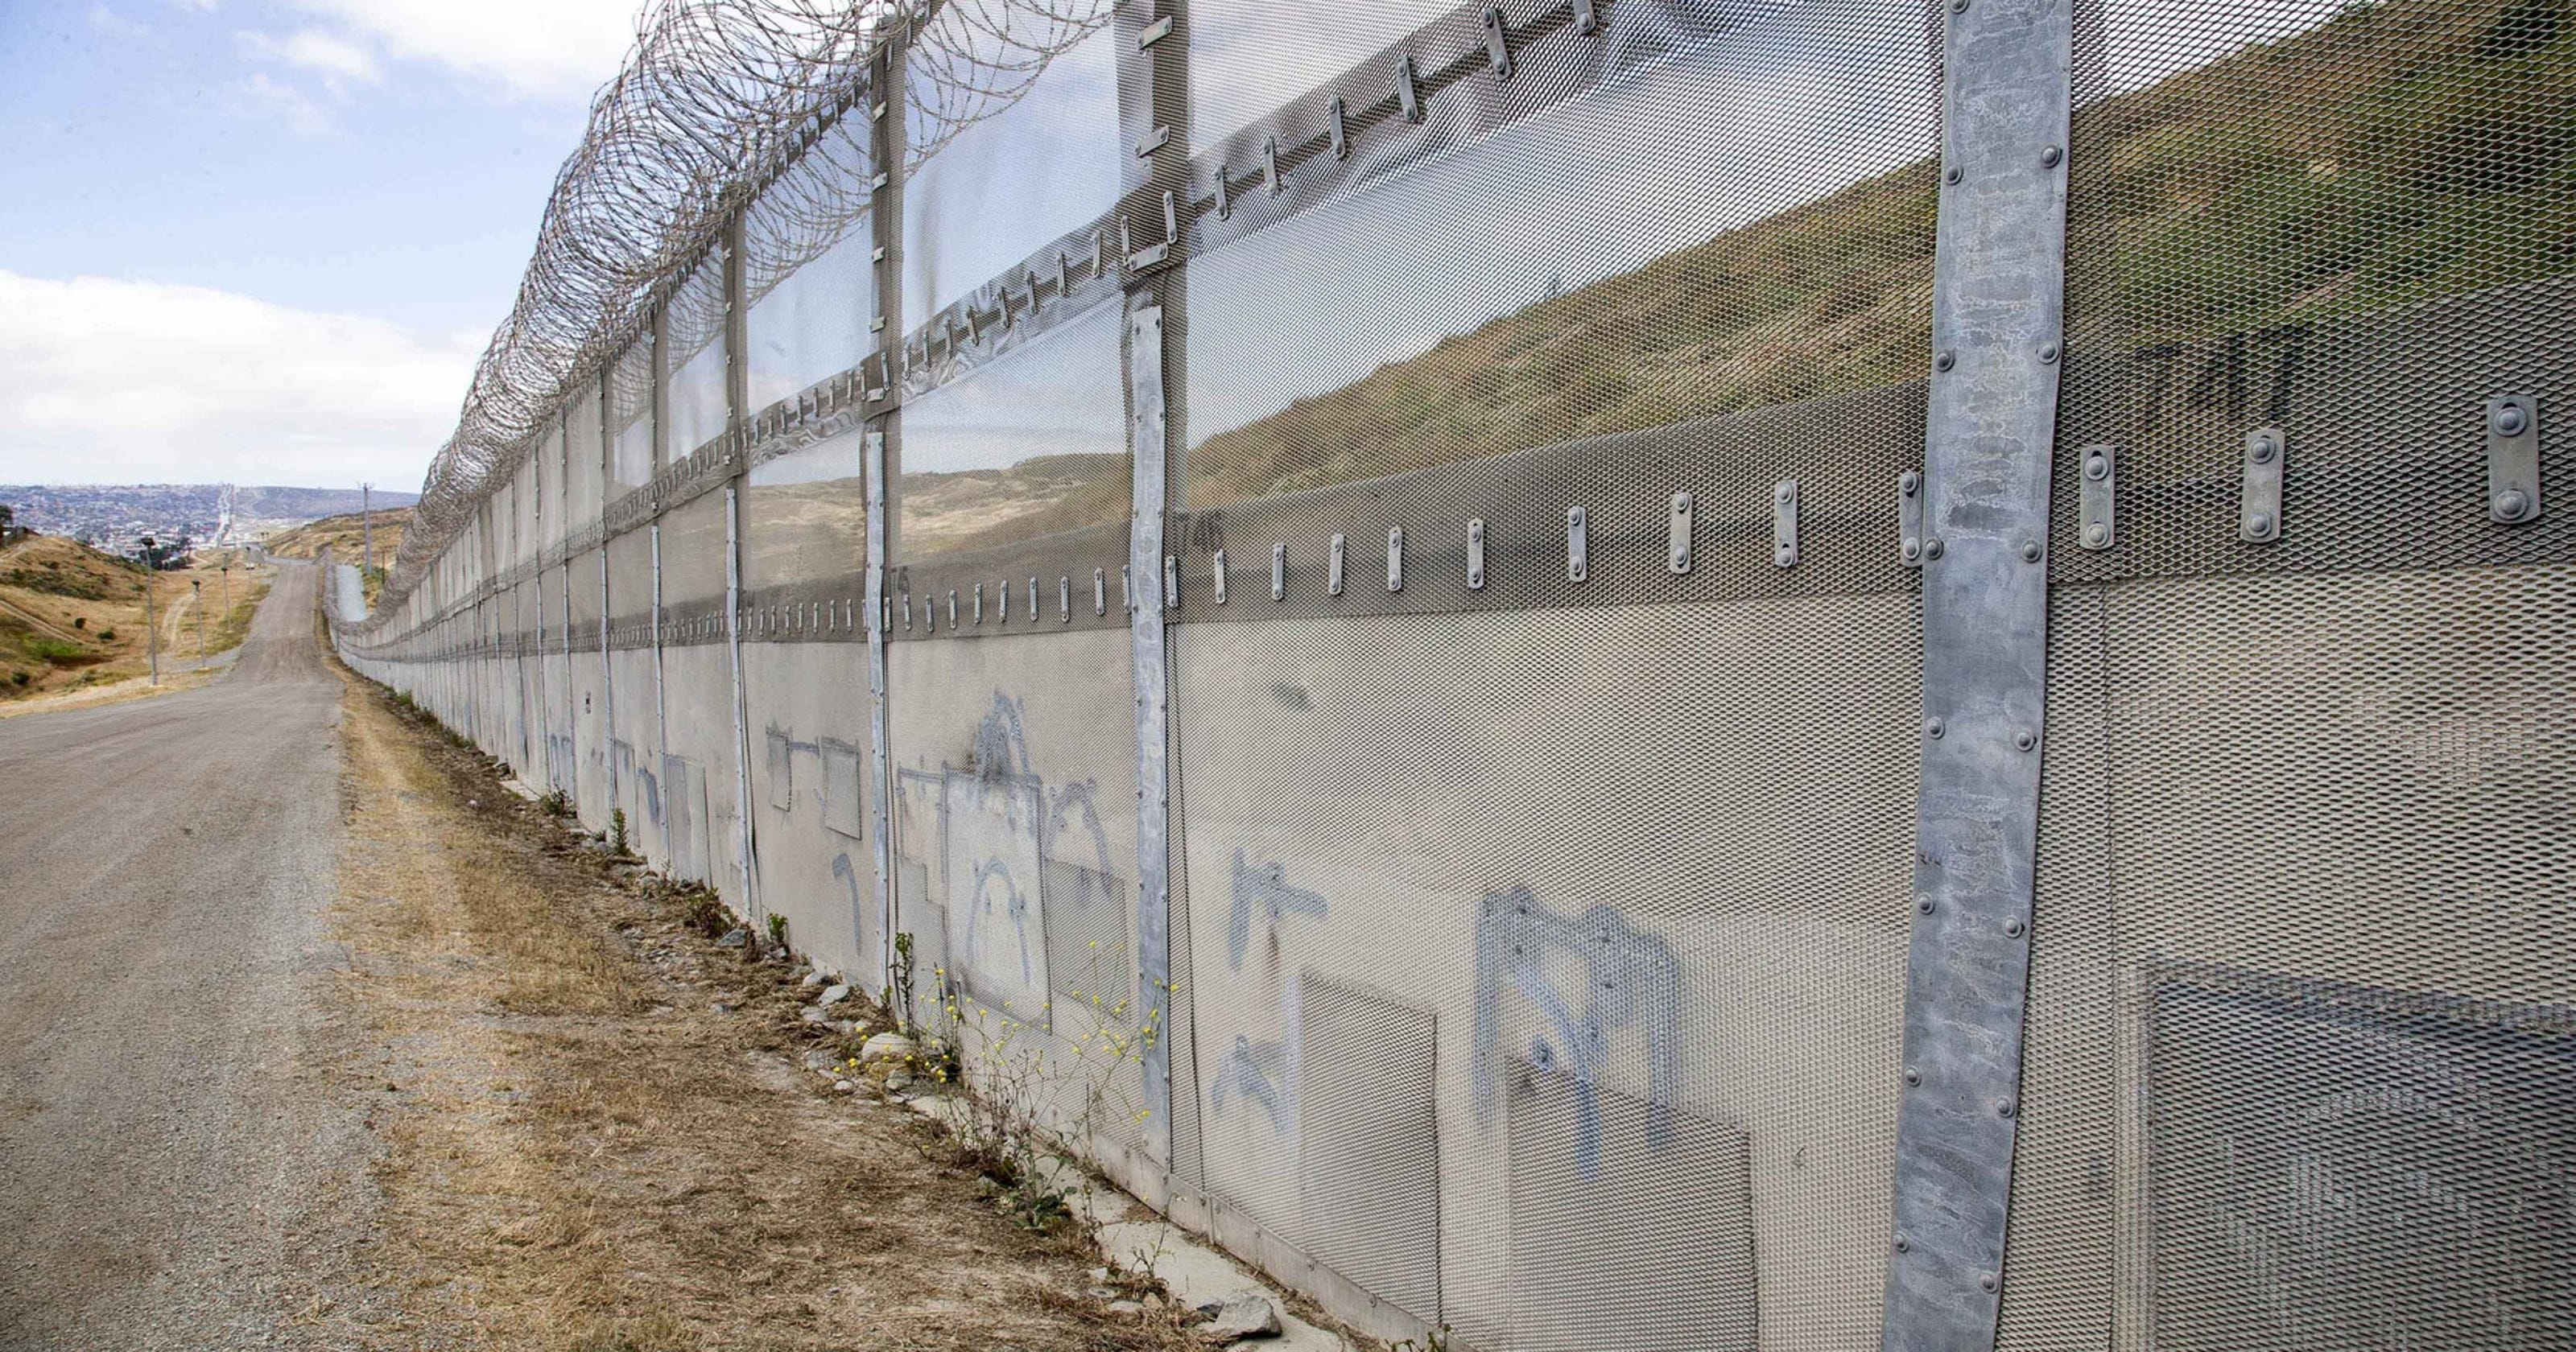 THE WALL: How long is the U.S.-Mexico border?